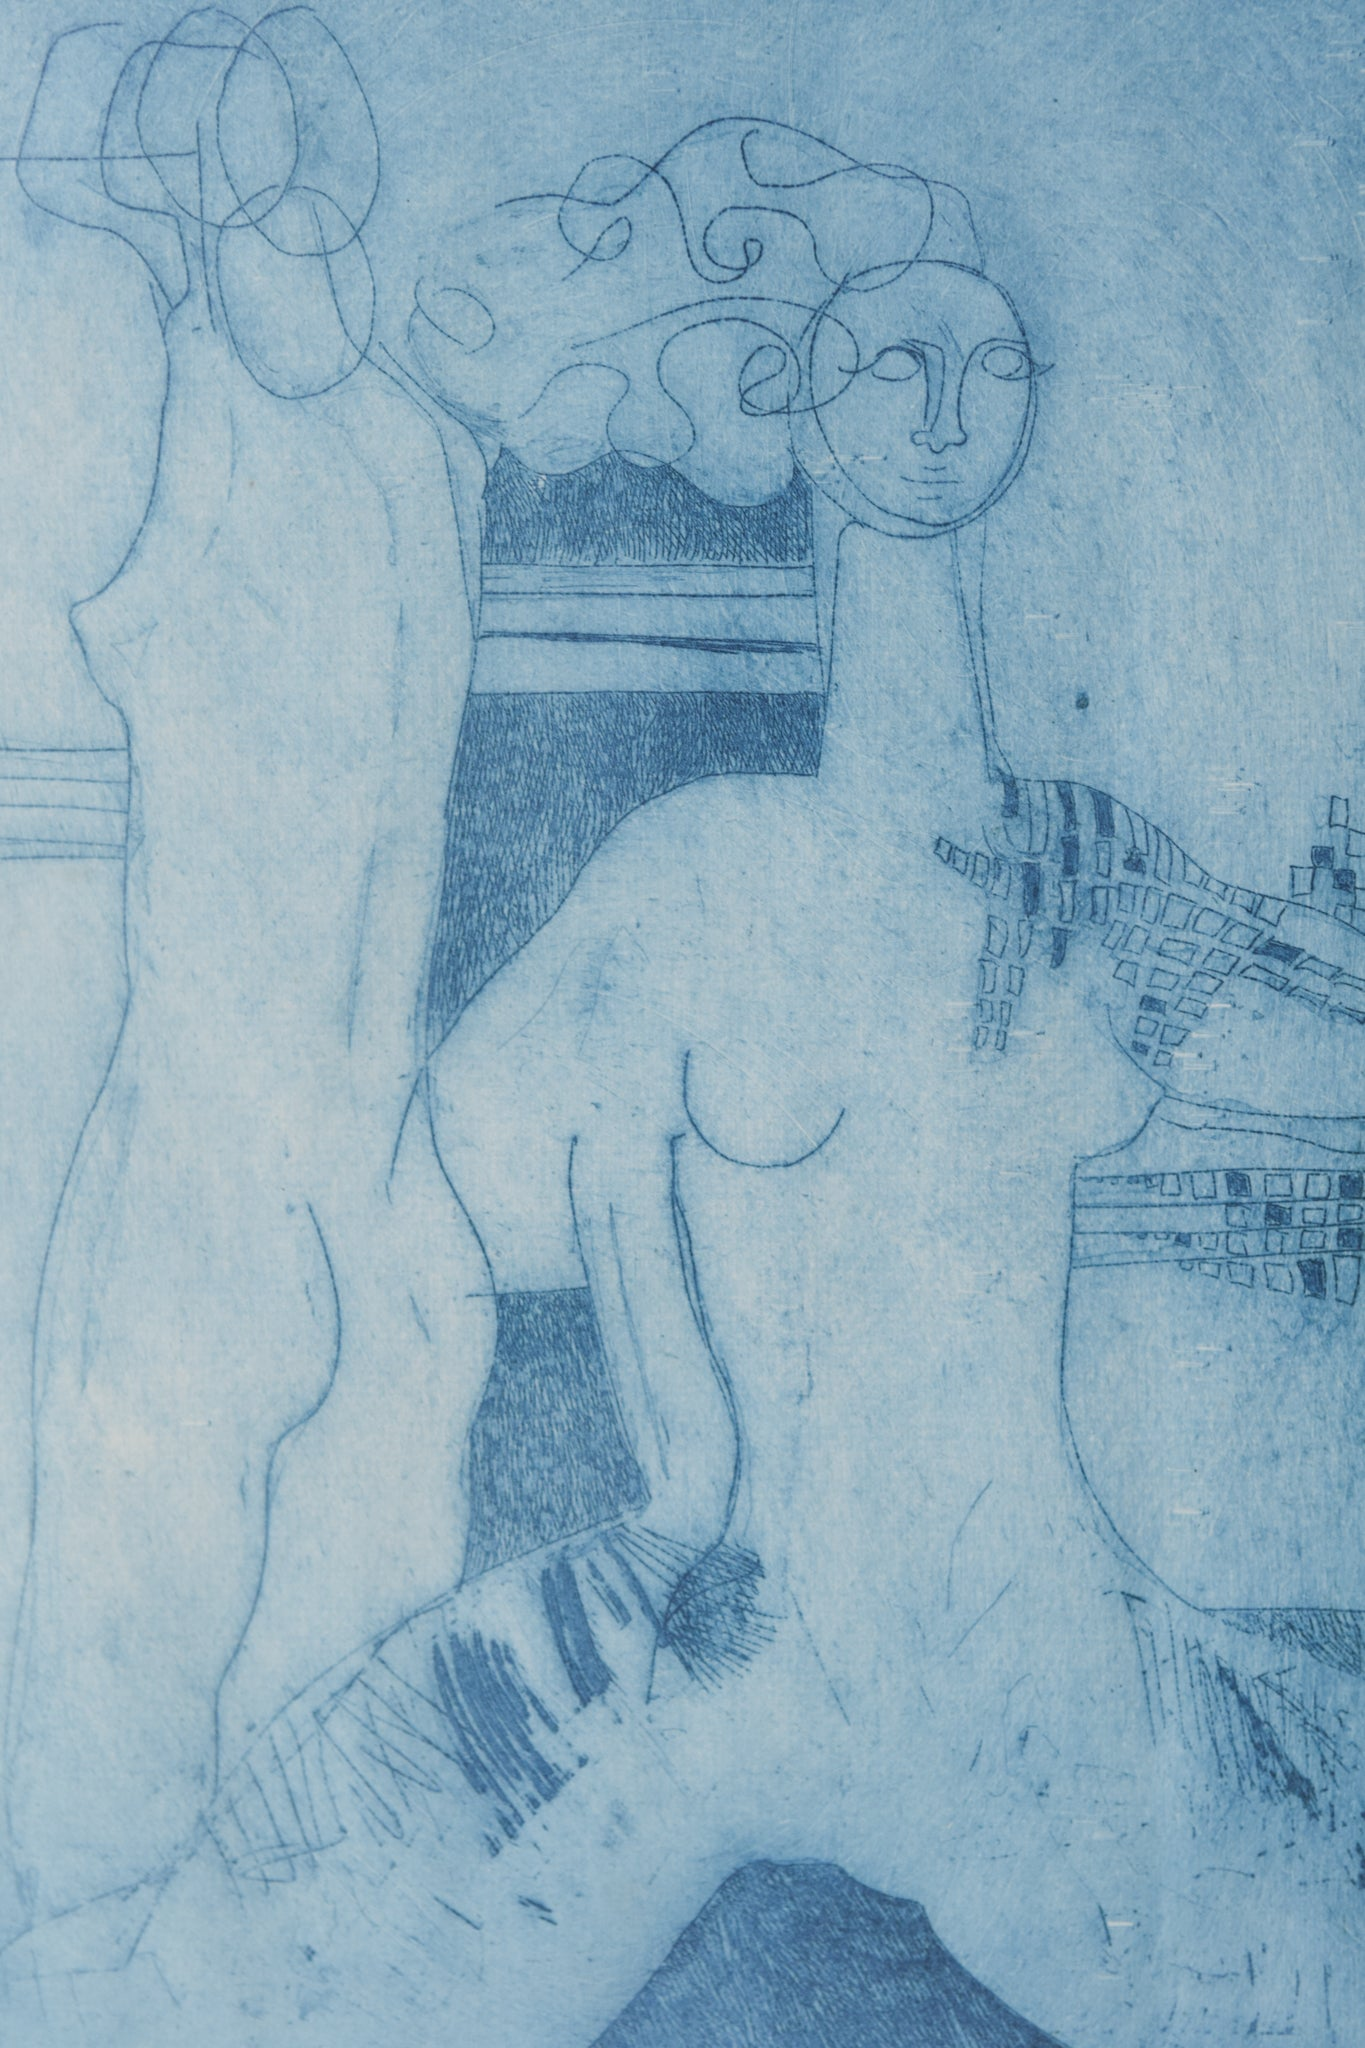 Etching with Nude Figures and Abstract Design_Detail